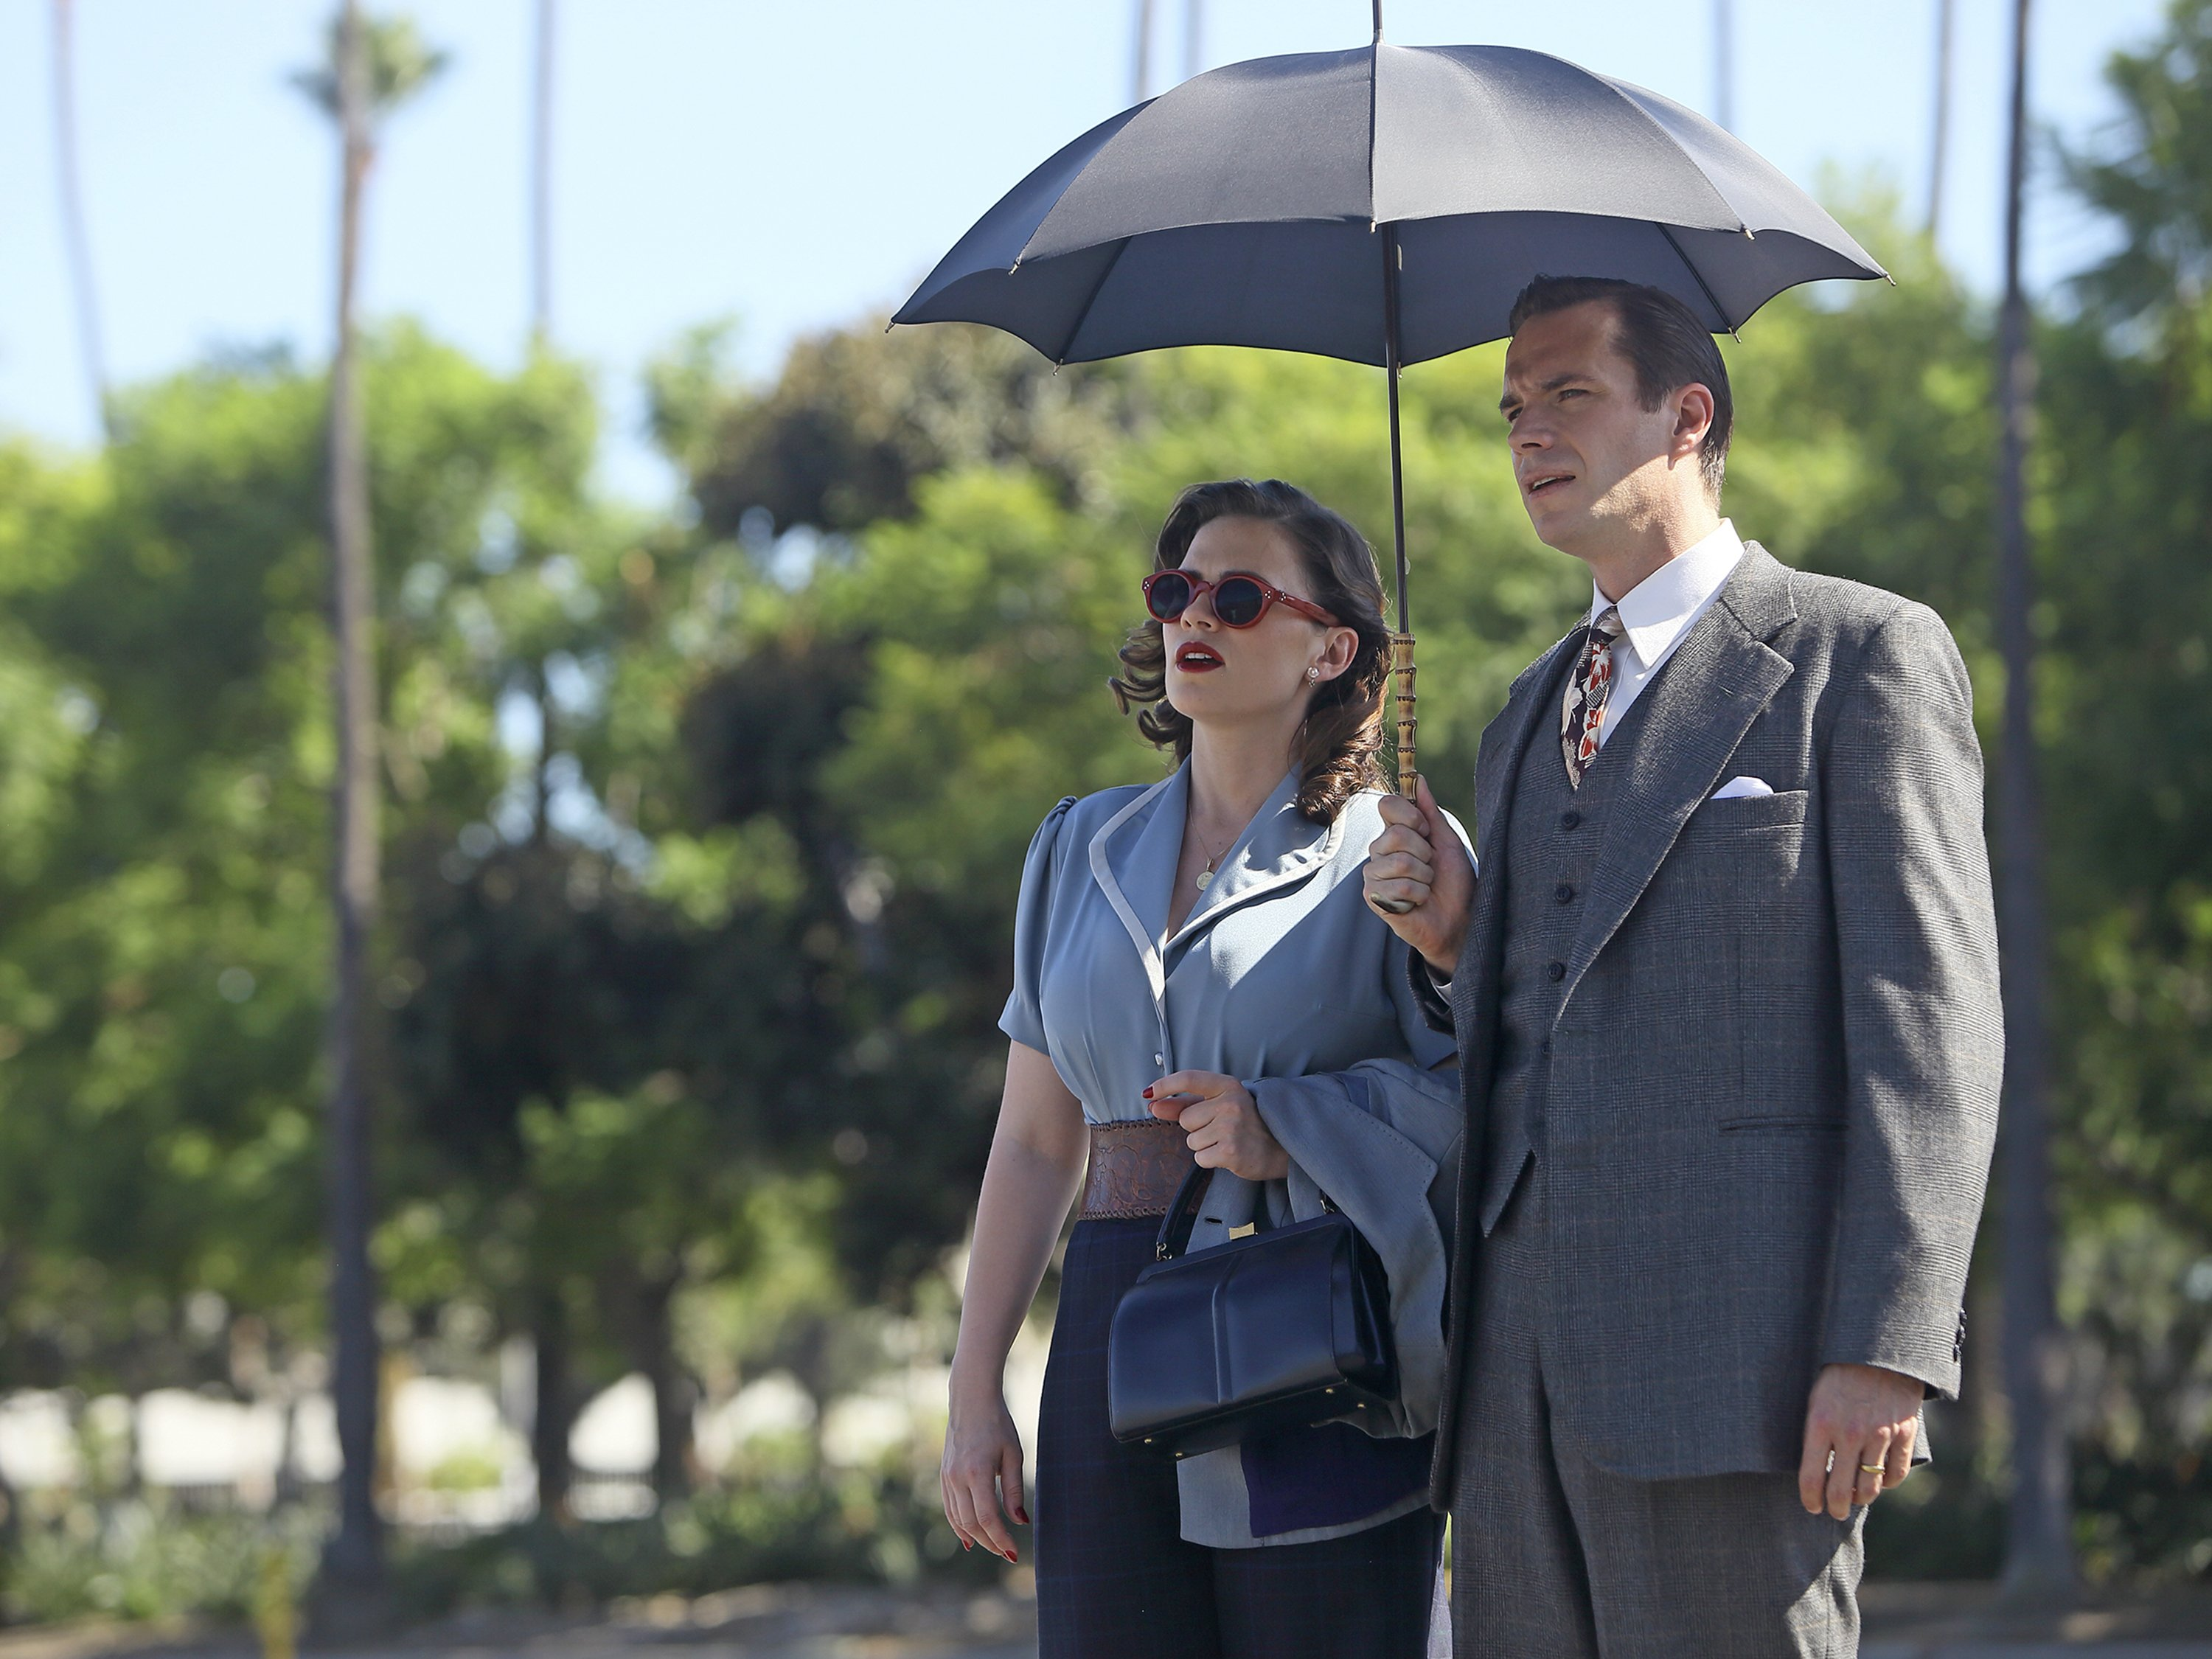 Agent Carter S02 review